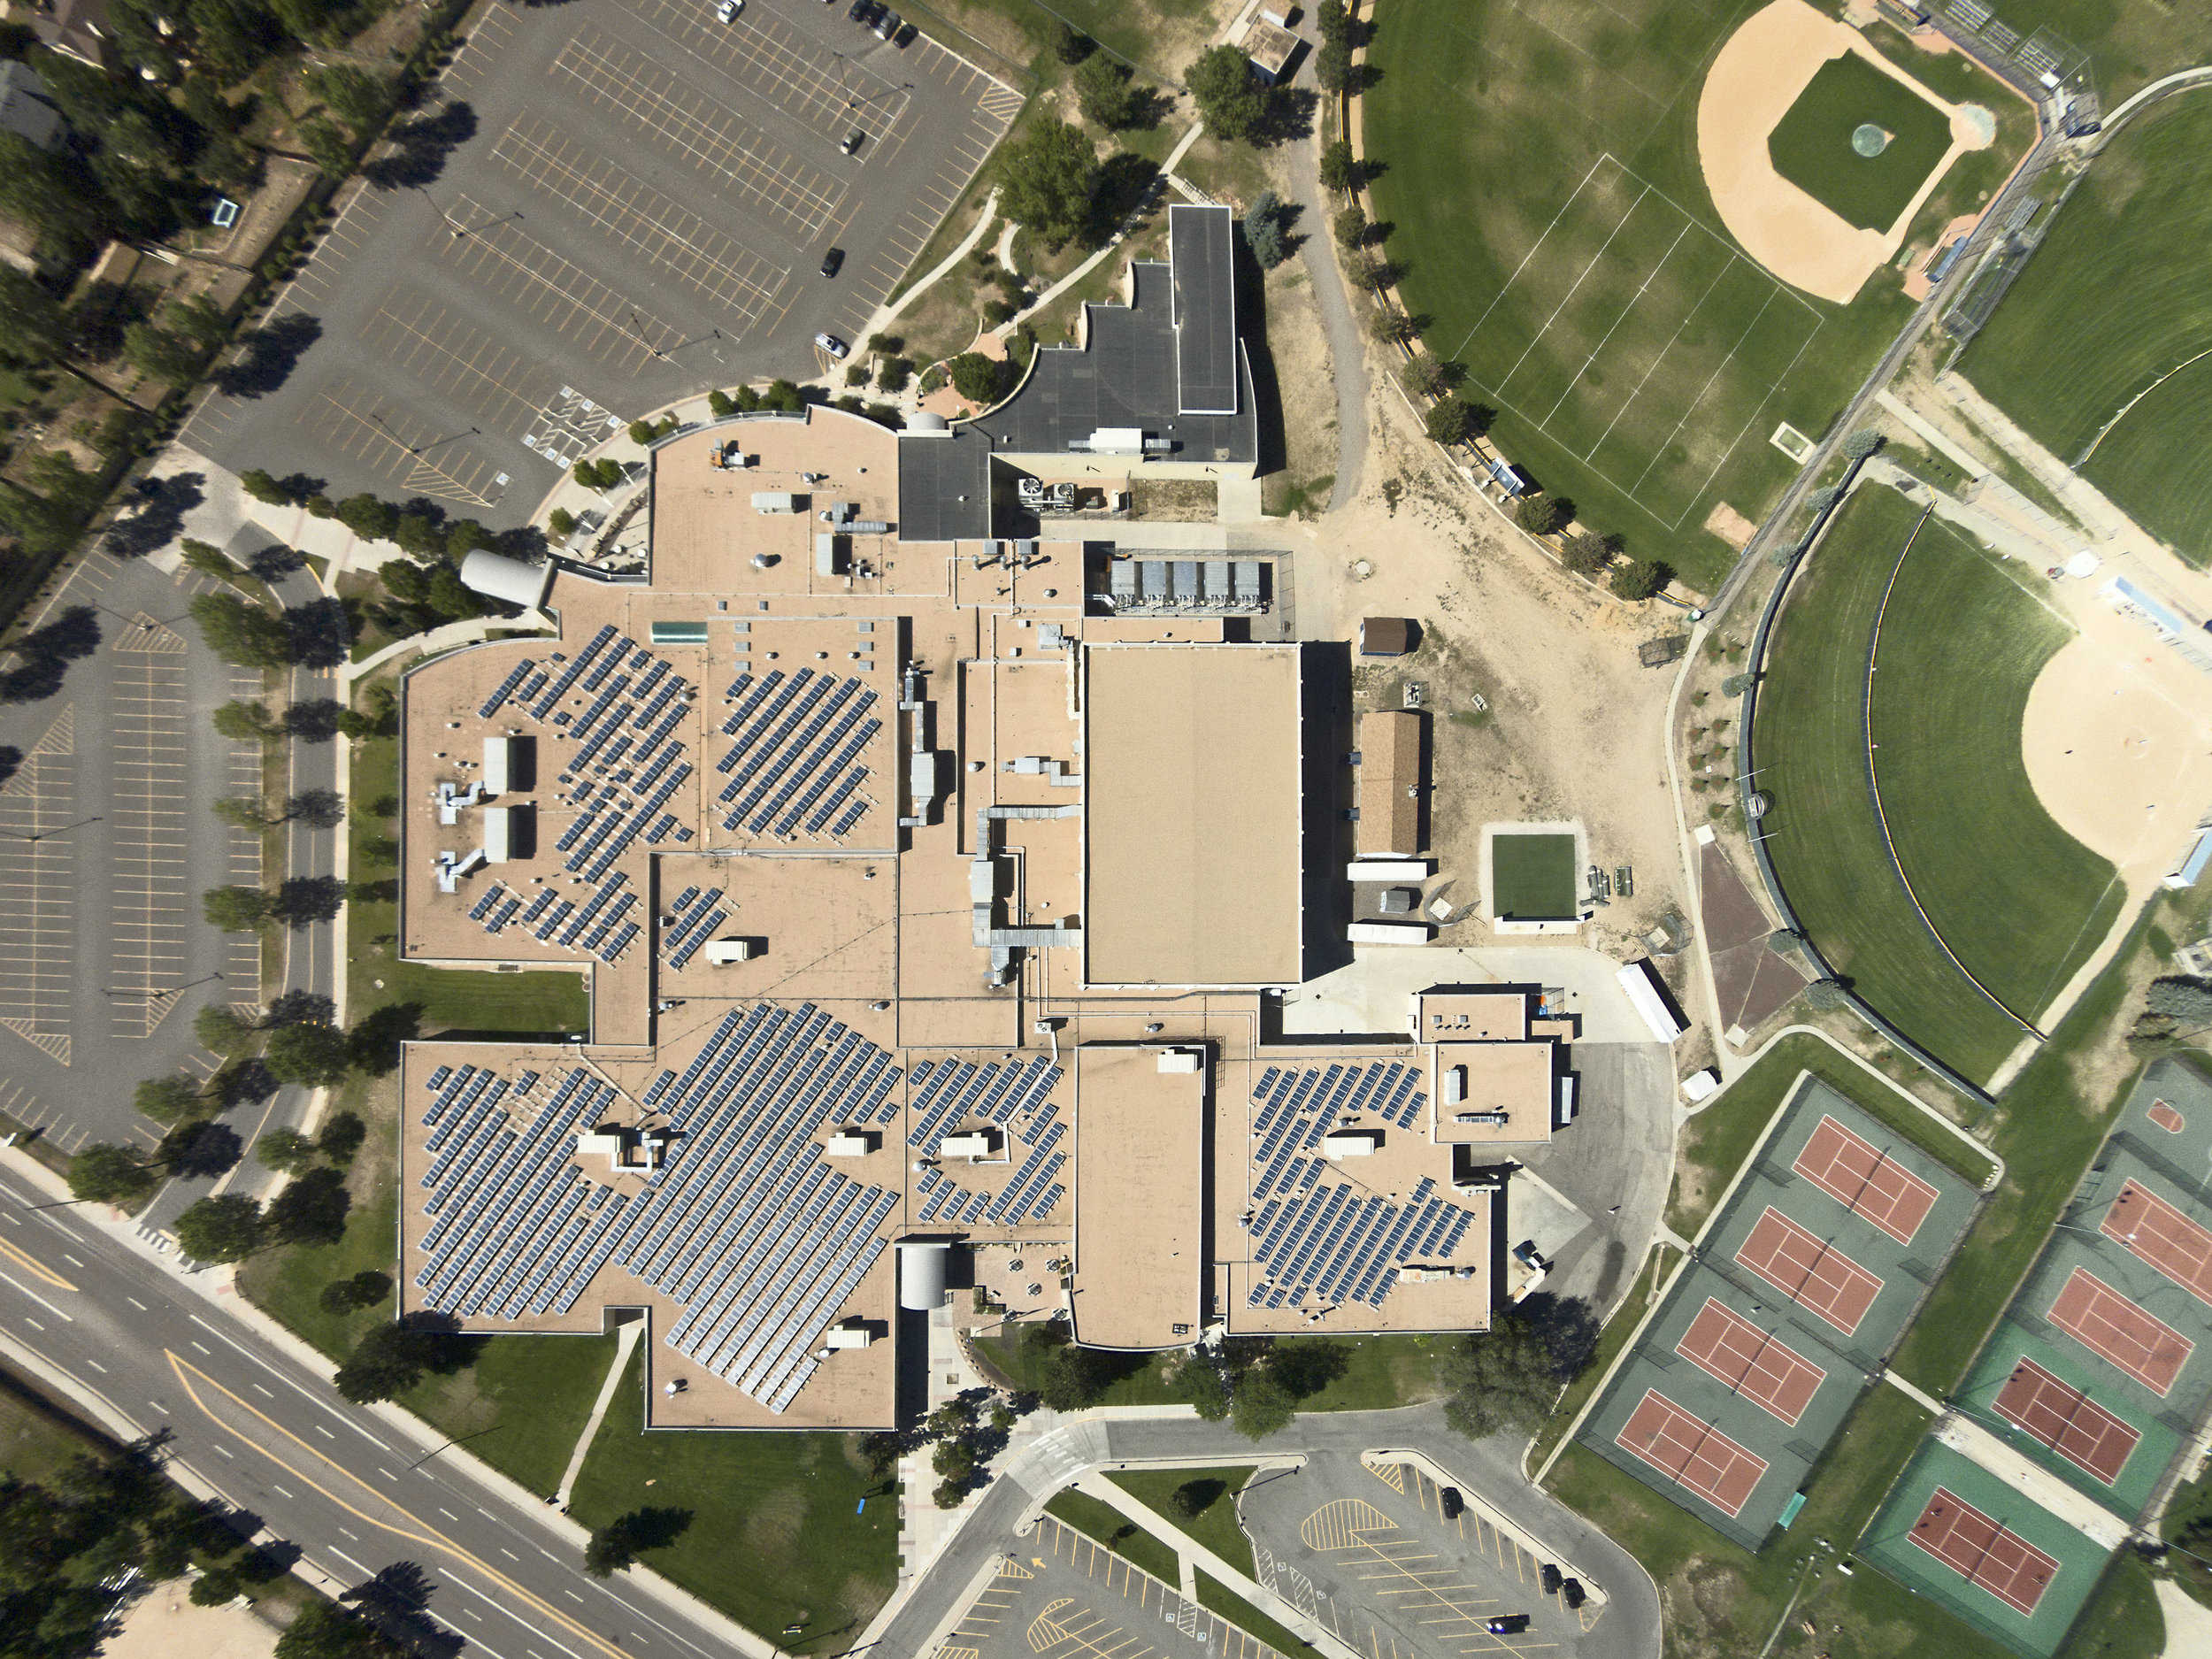 INDUSTRIAL SCALE EDUCATION, COLUMBINE HIGH SCHOOL